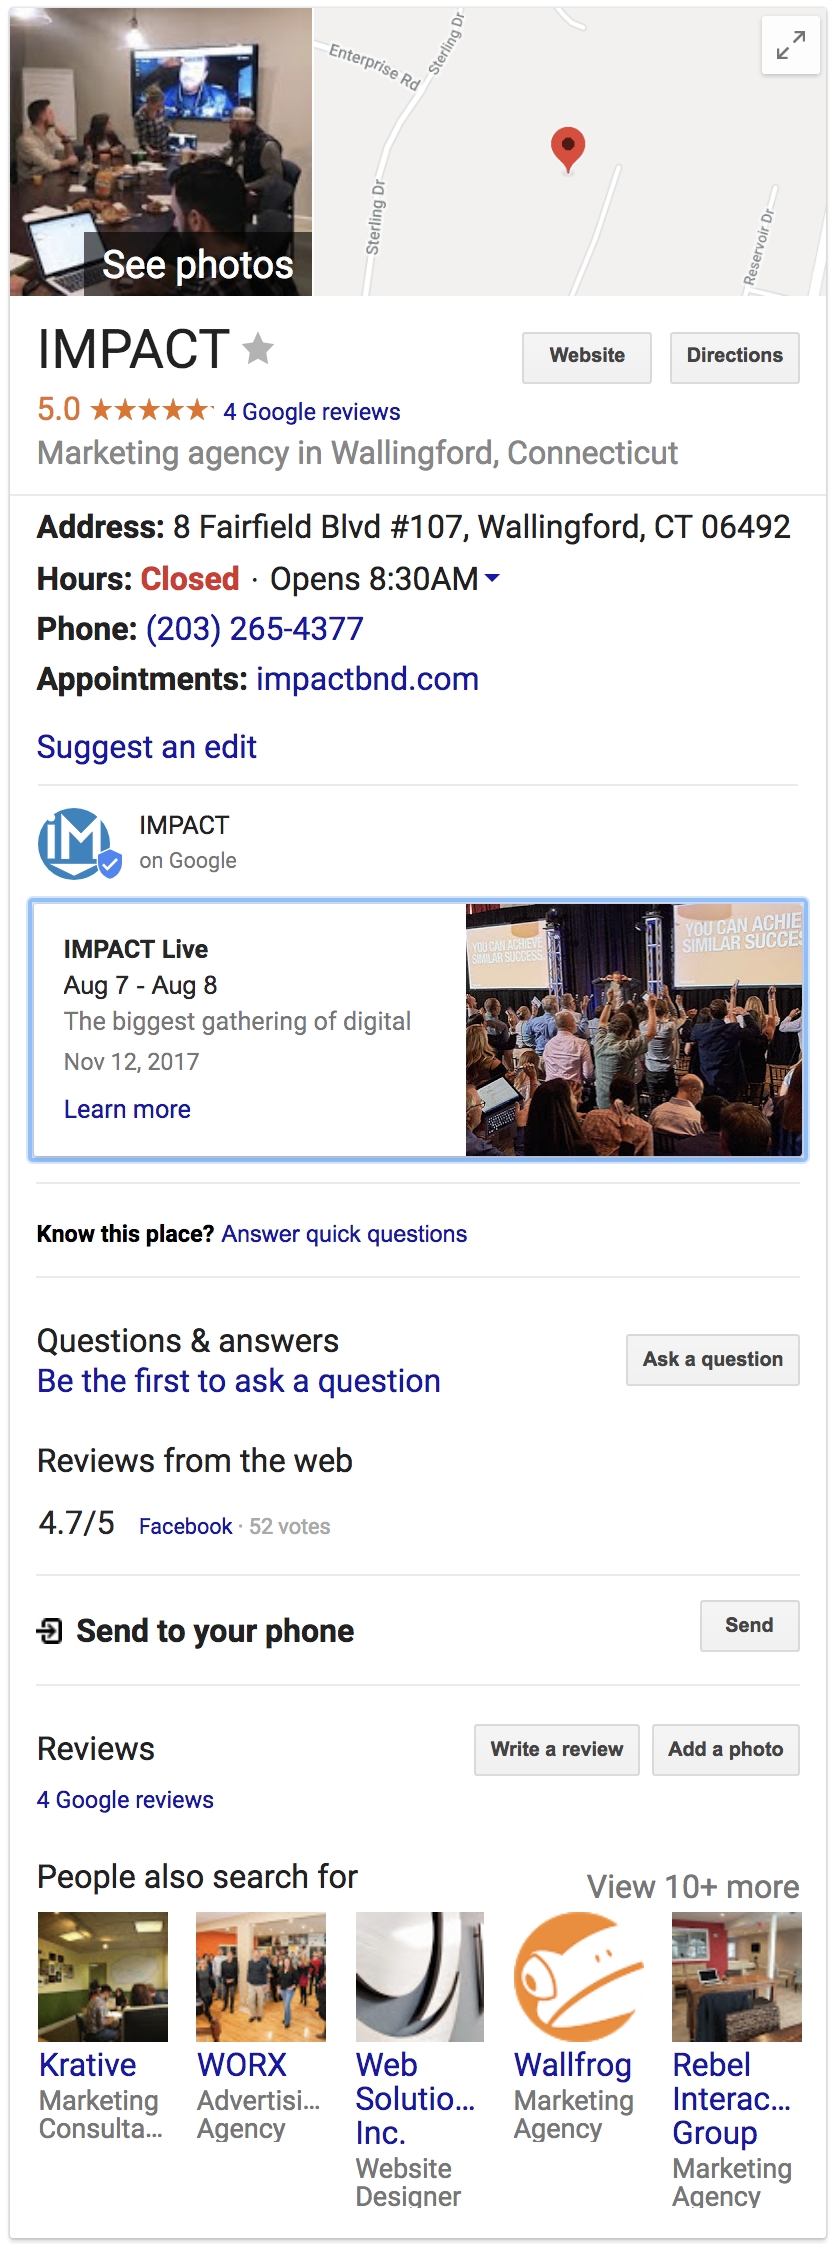 Google My Business Post in Knowledge Panel Example (IMPACT)